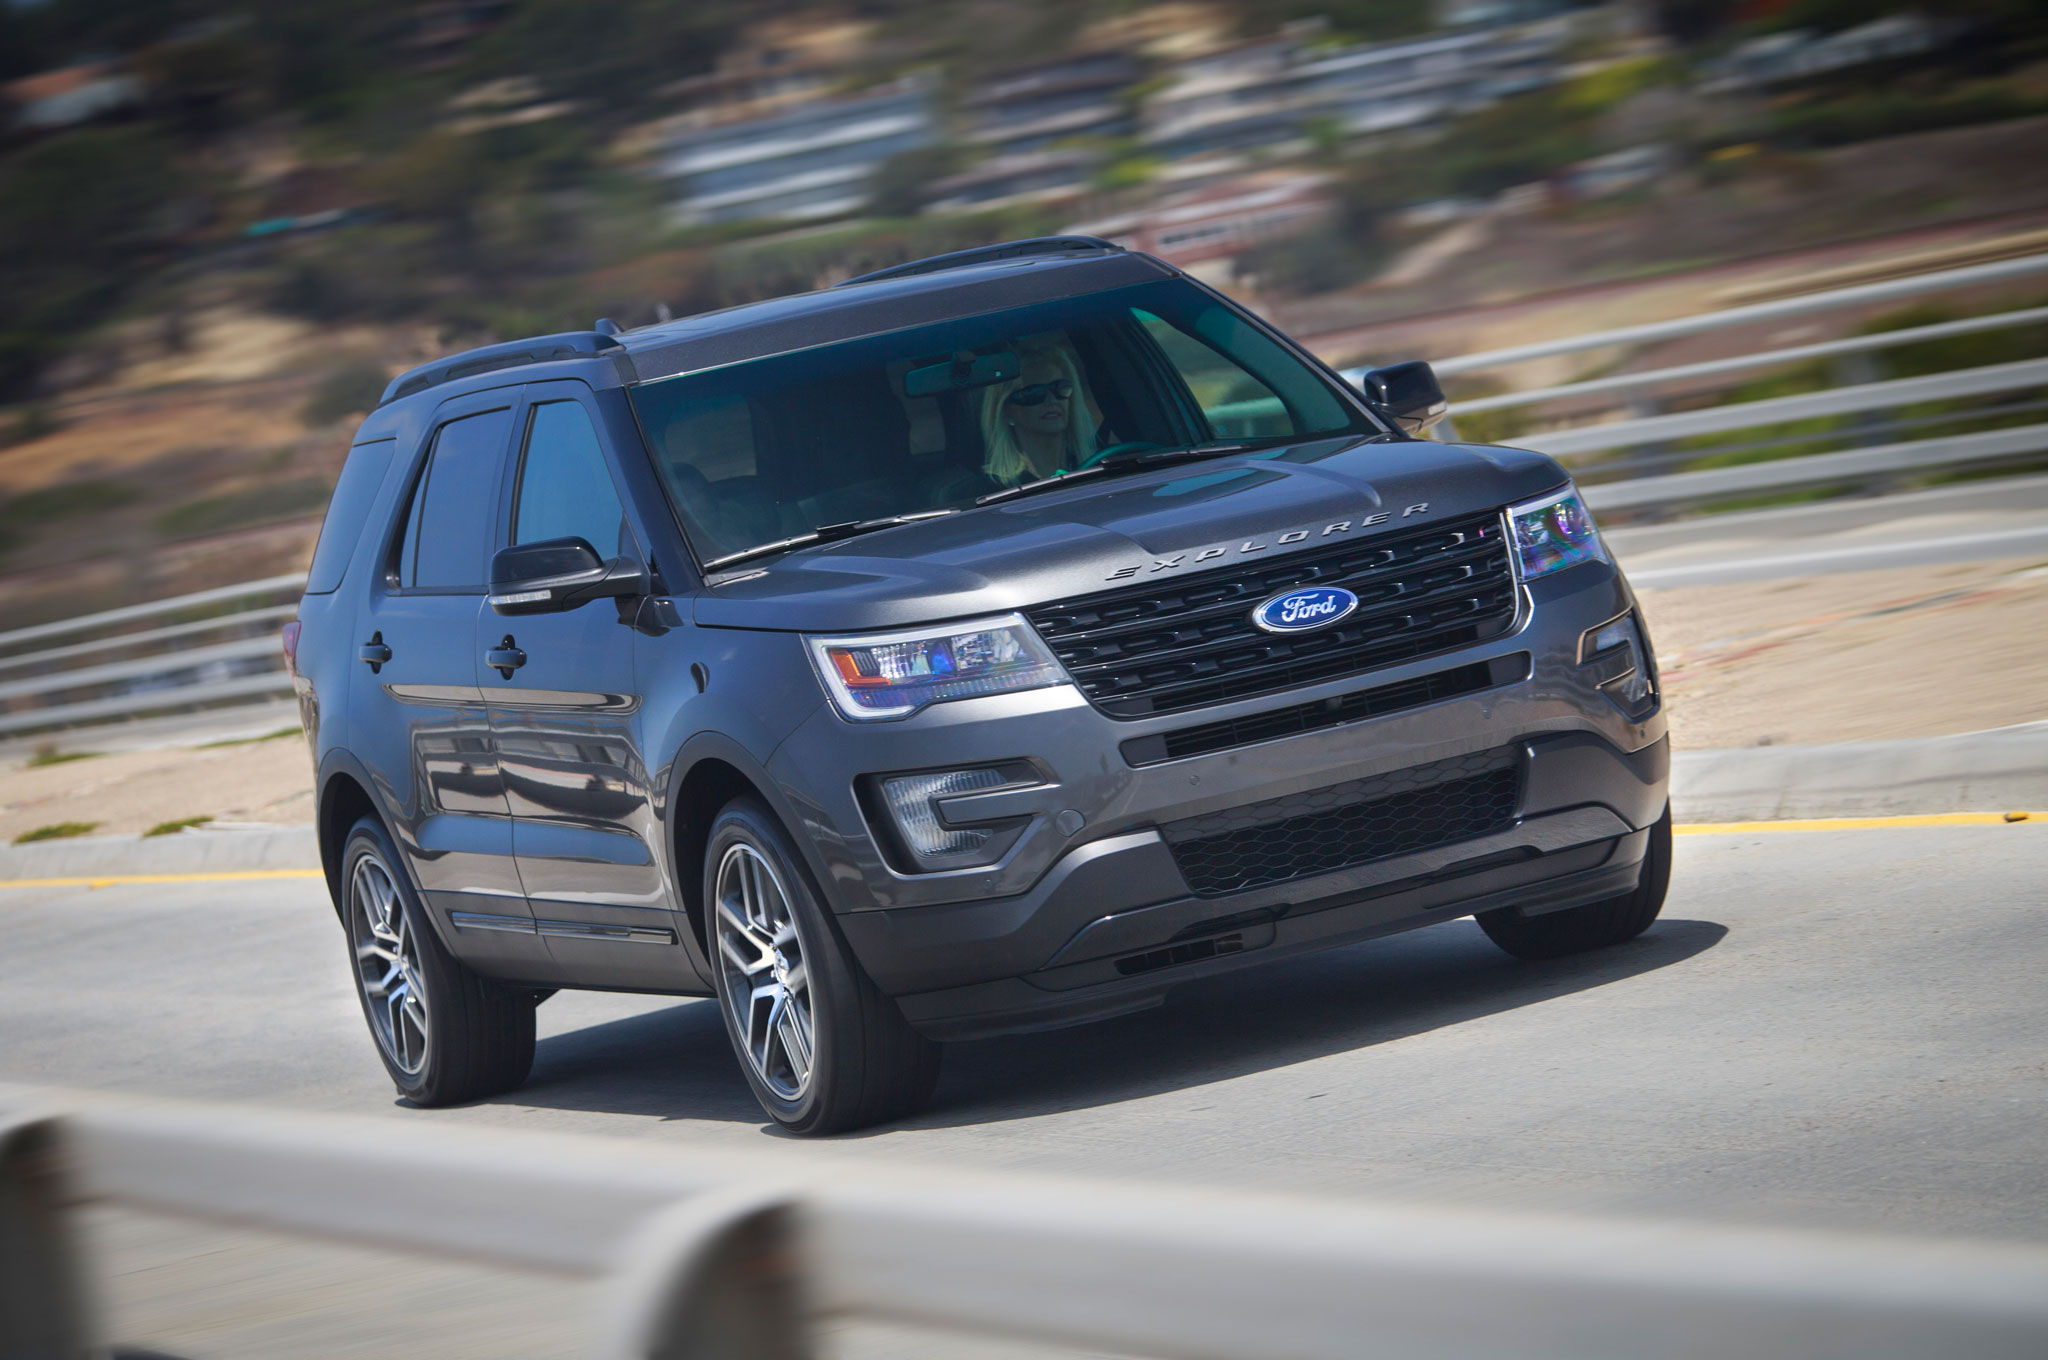 But when youre driving the explorer with its turbo four on one of those winding roads that lead to the campground lake or trailhead